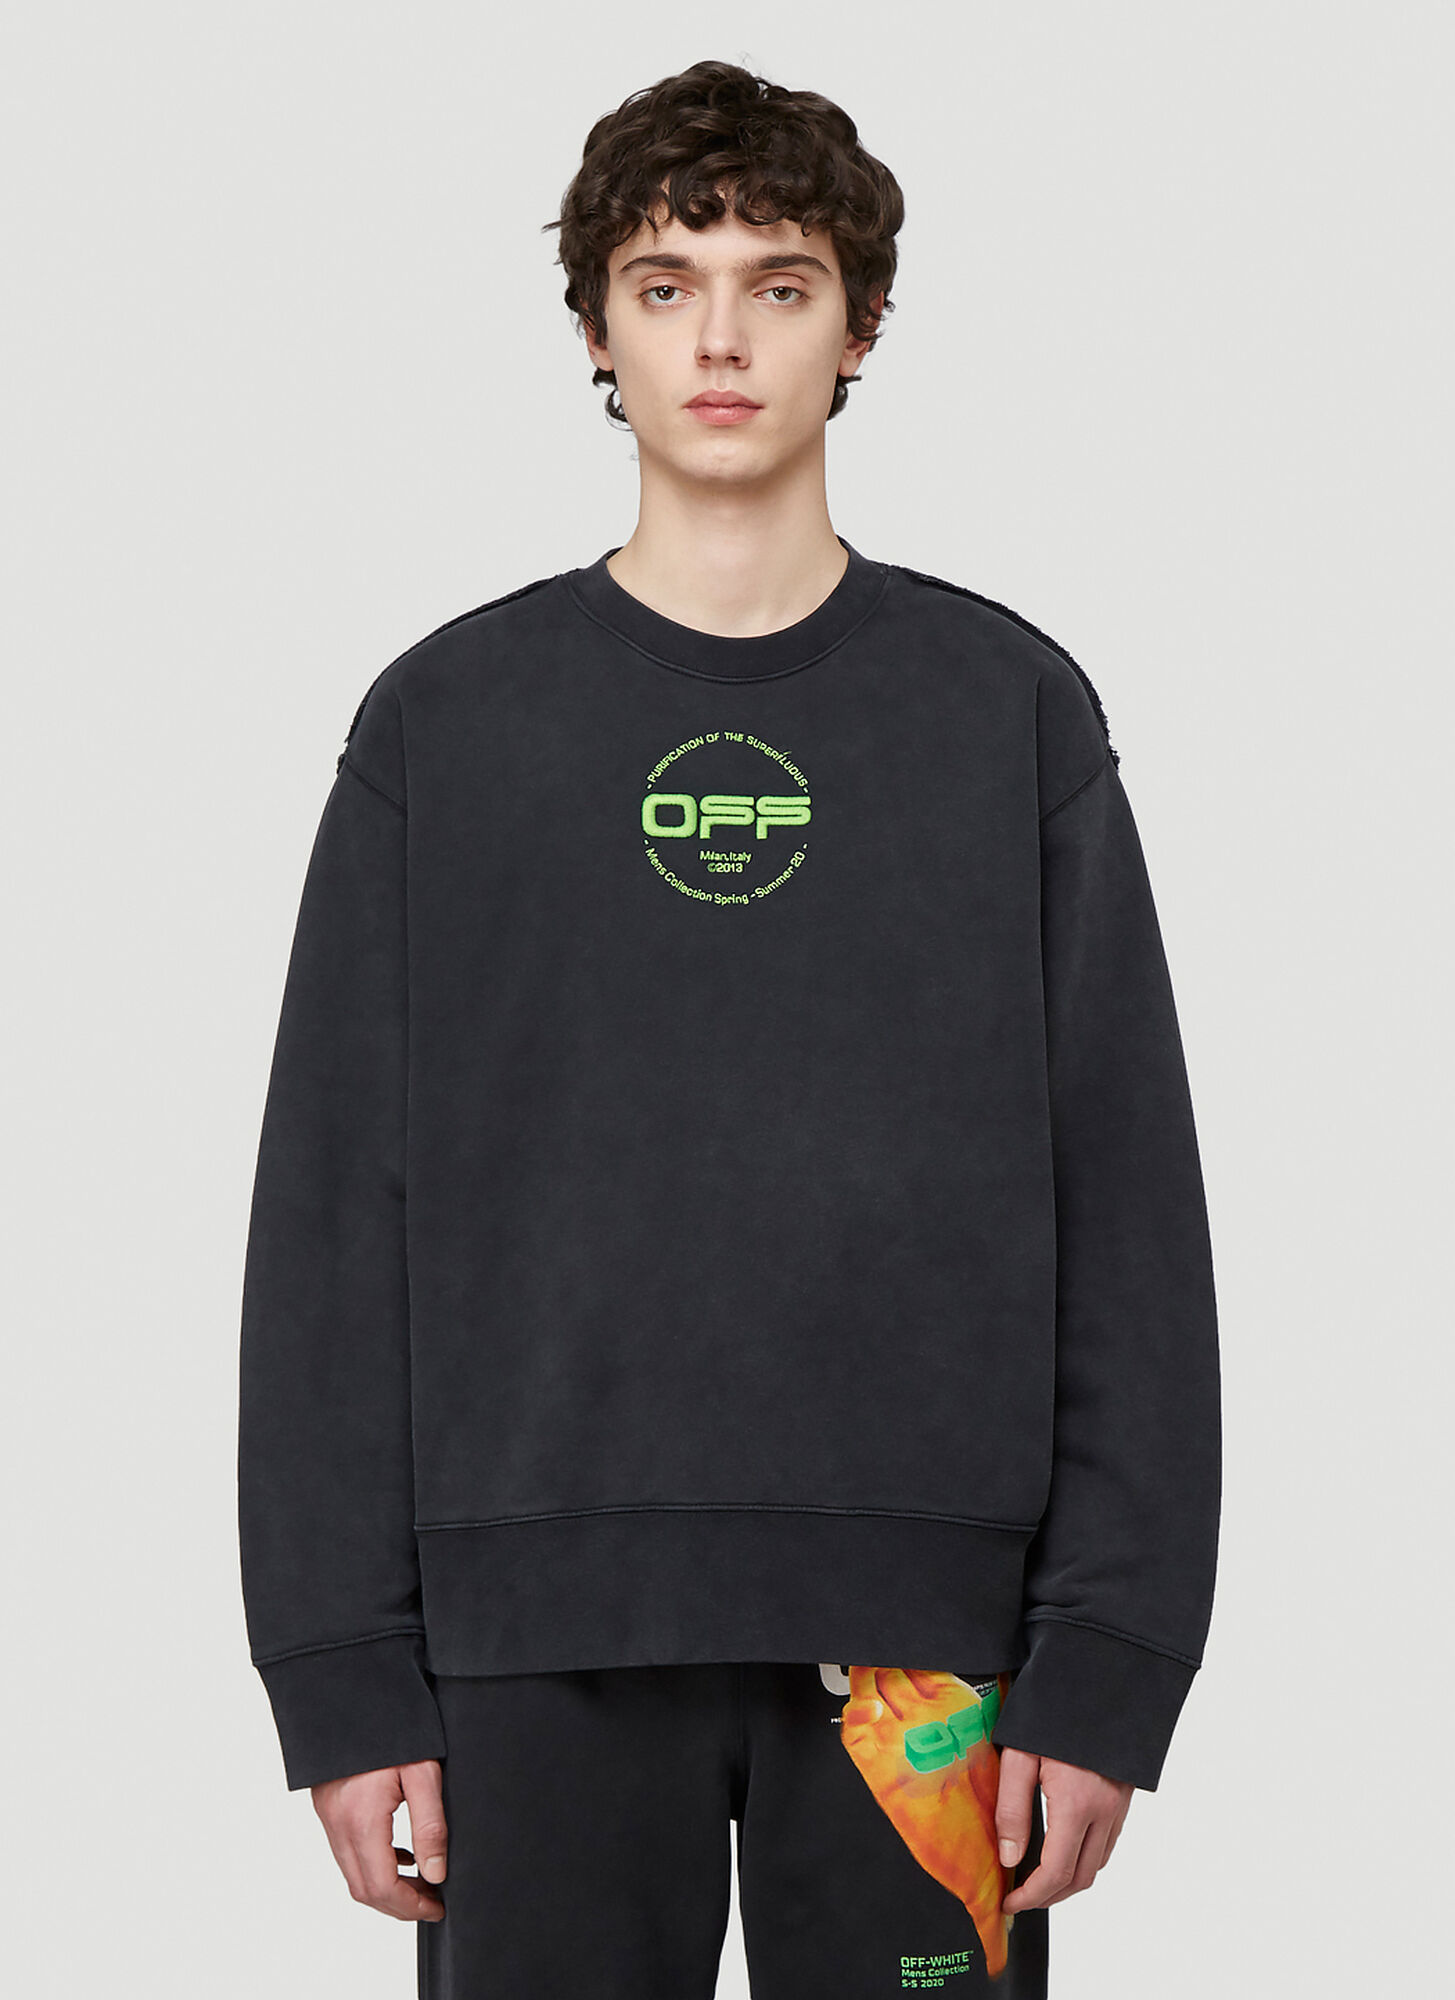 Off-White Printed Logo Sweatshirt in Black size XXL